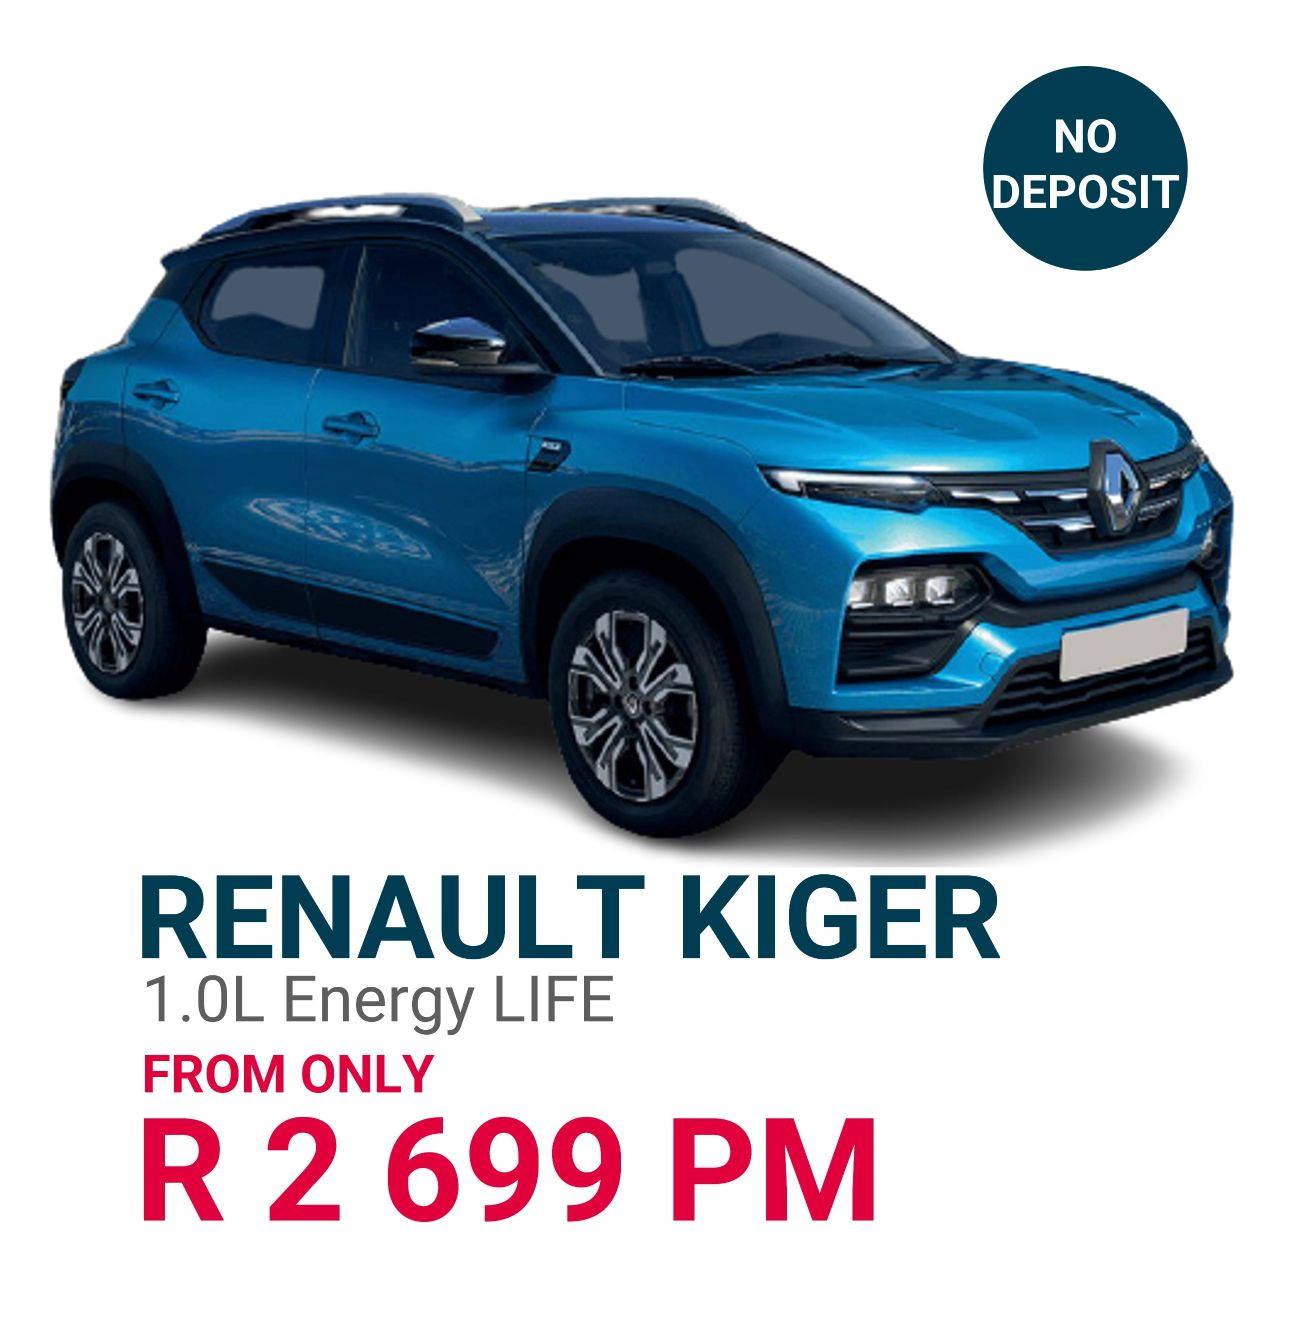 renault-kiger-from-only-r2-699pm